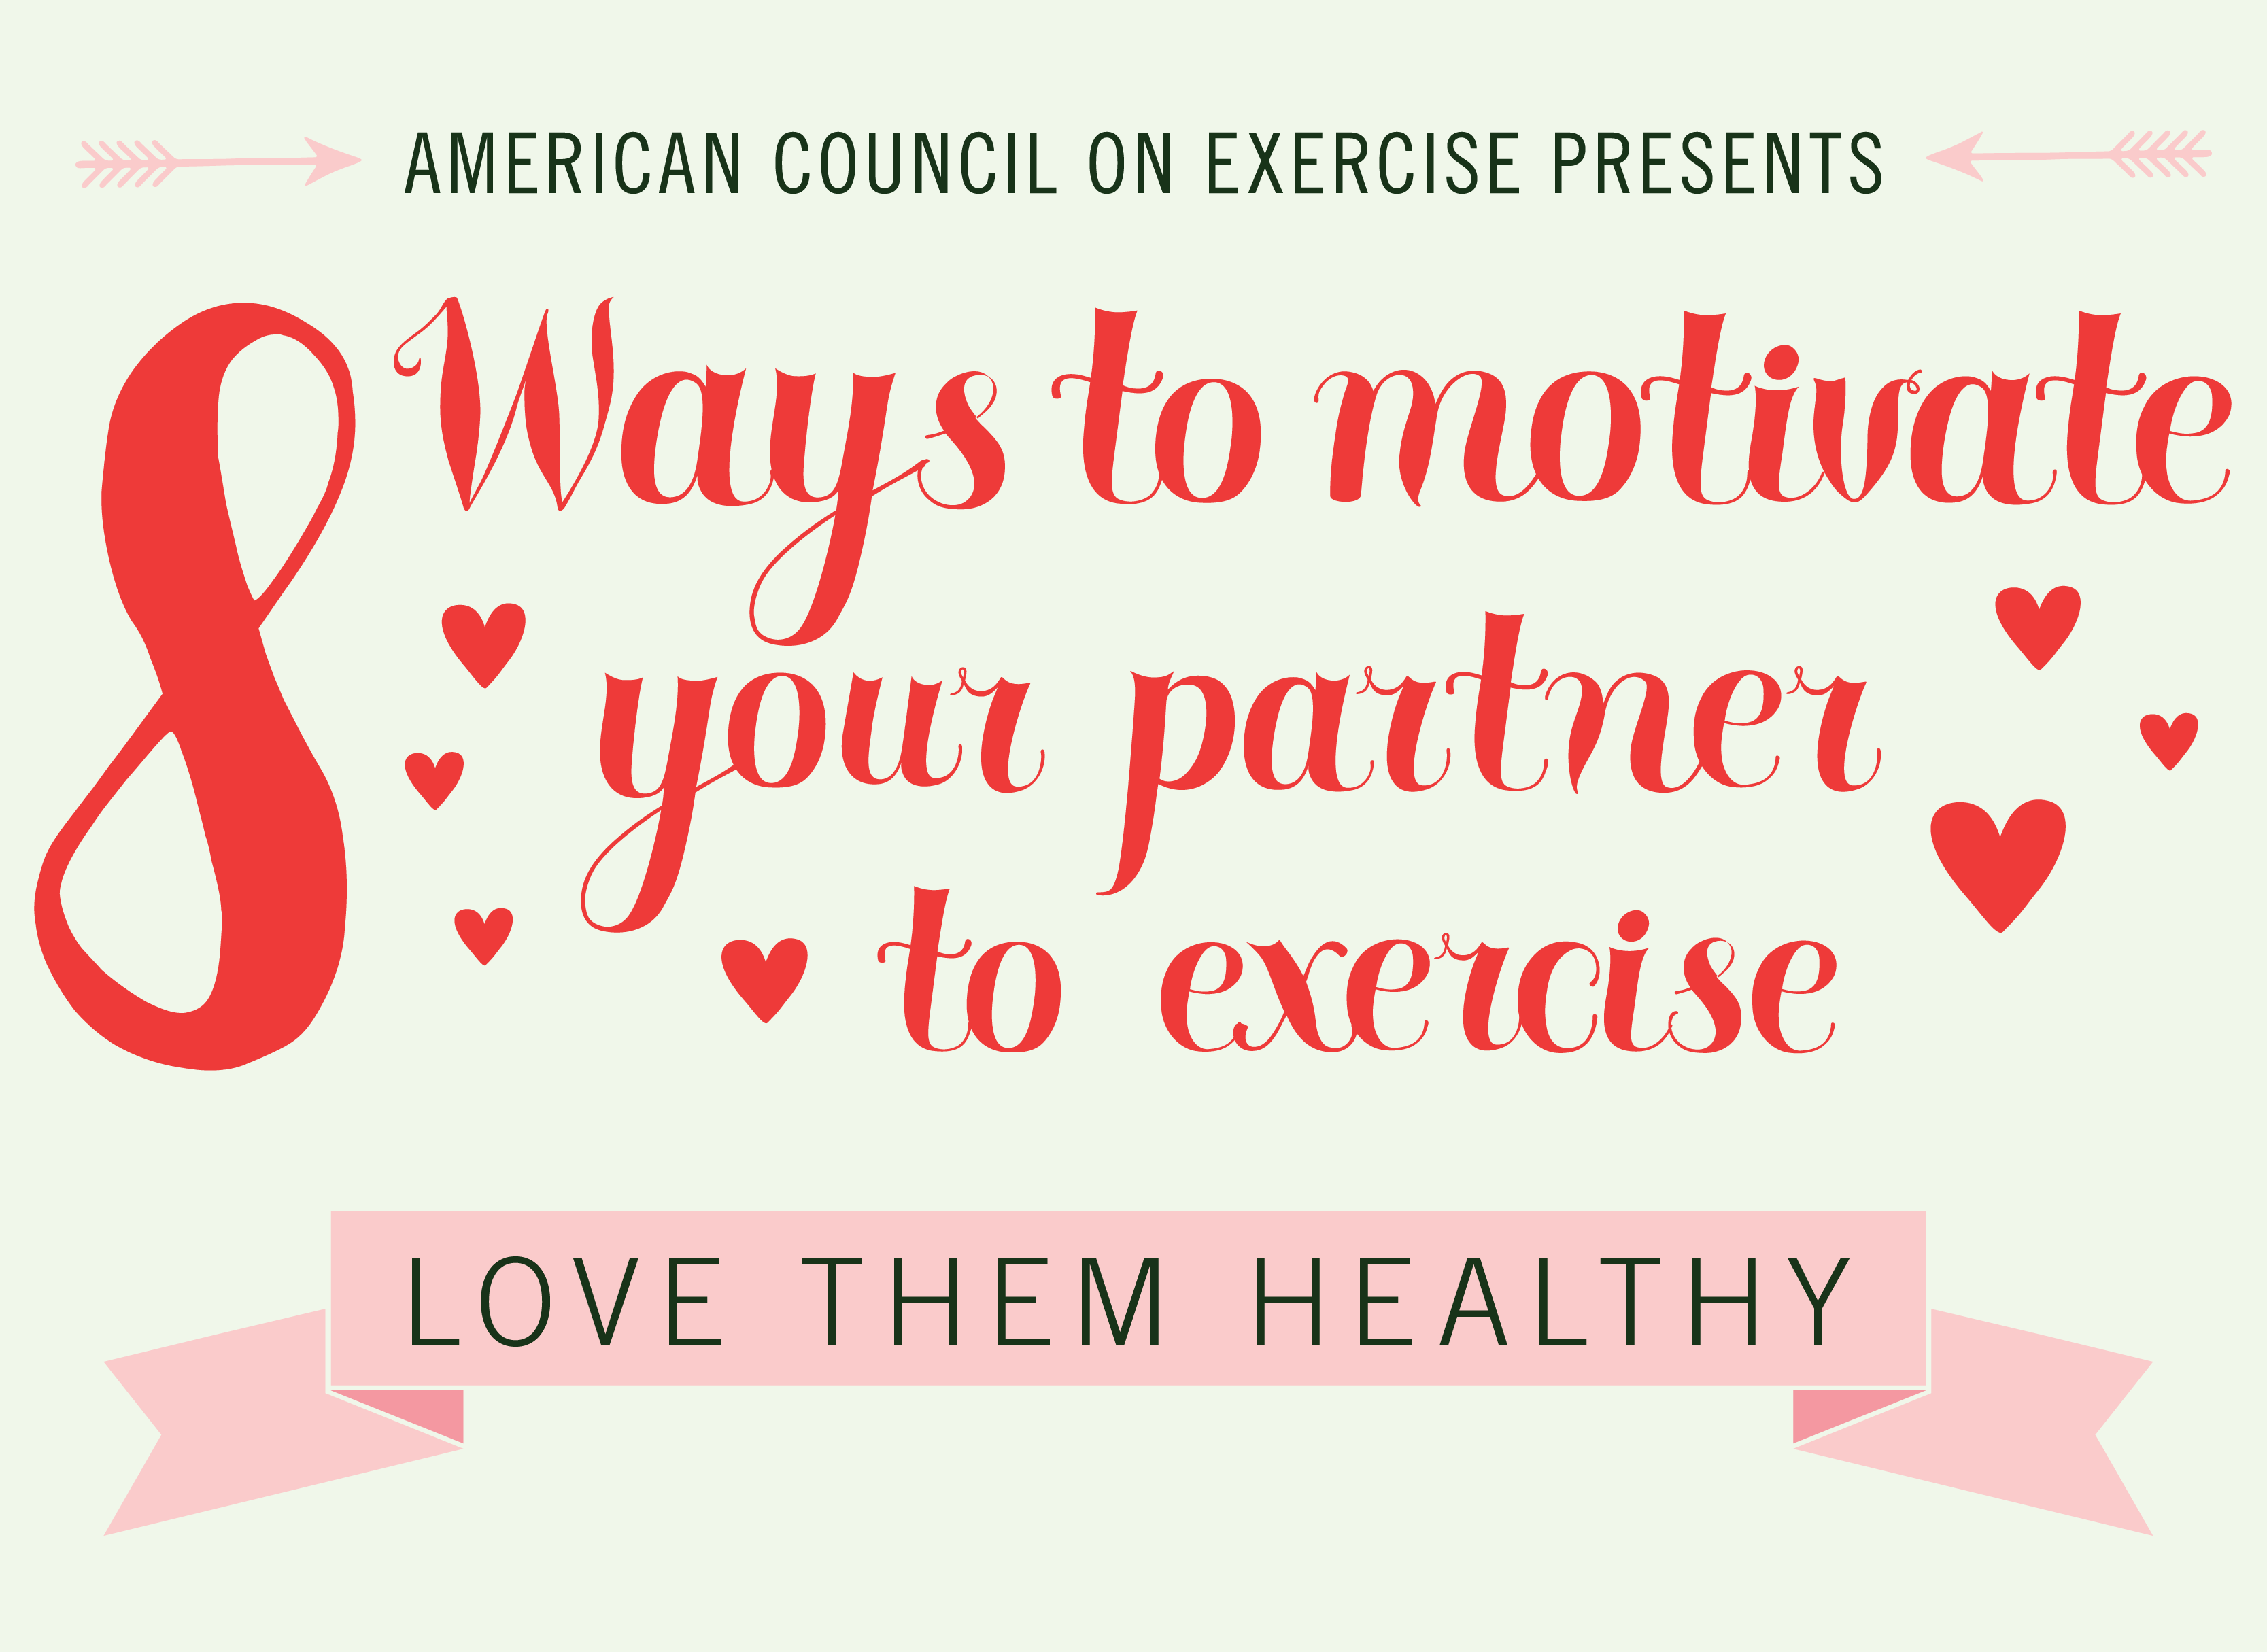 8 Ways to Motivate Your Partner to Exercise